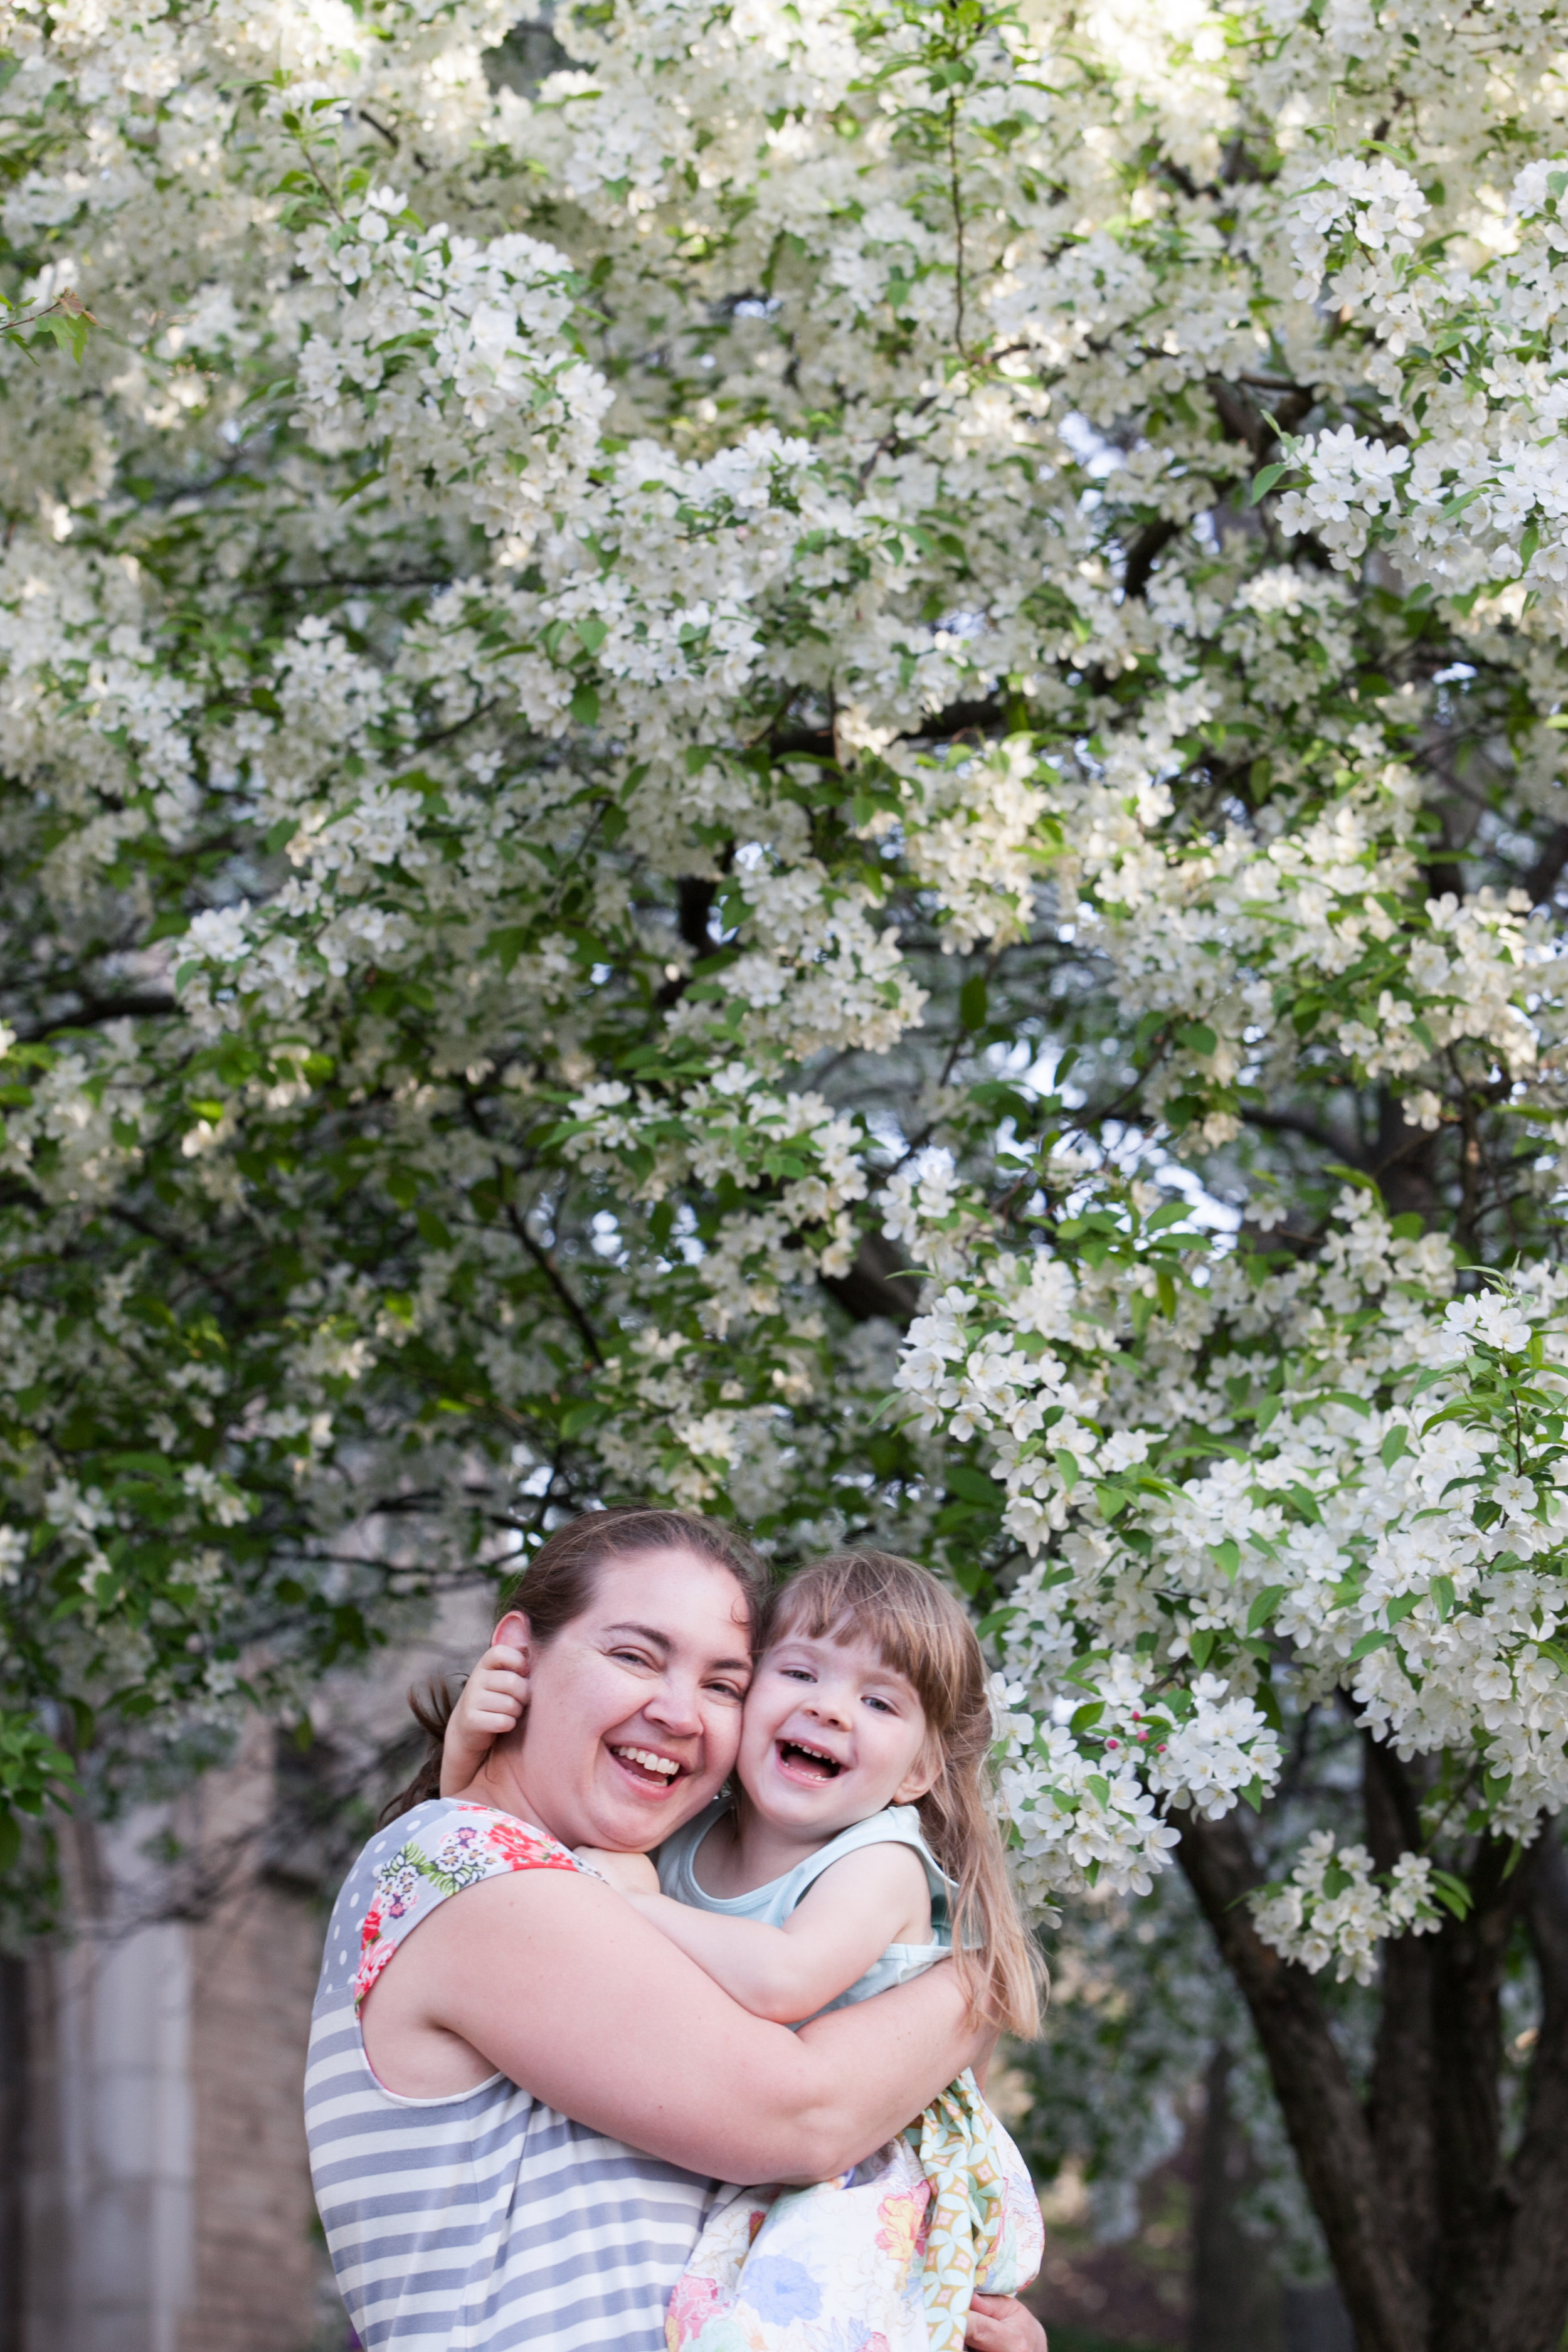 Our annual photo with the apple blossoms, my favorite. Photo by my husband, Jon Harle.